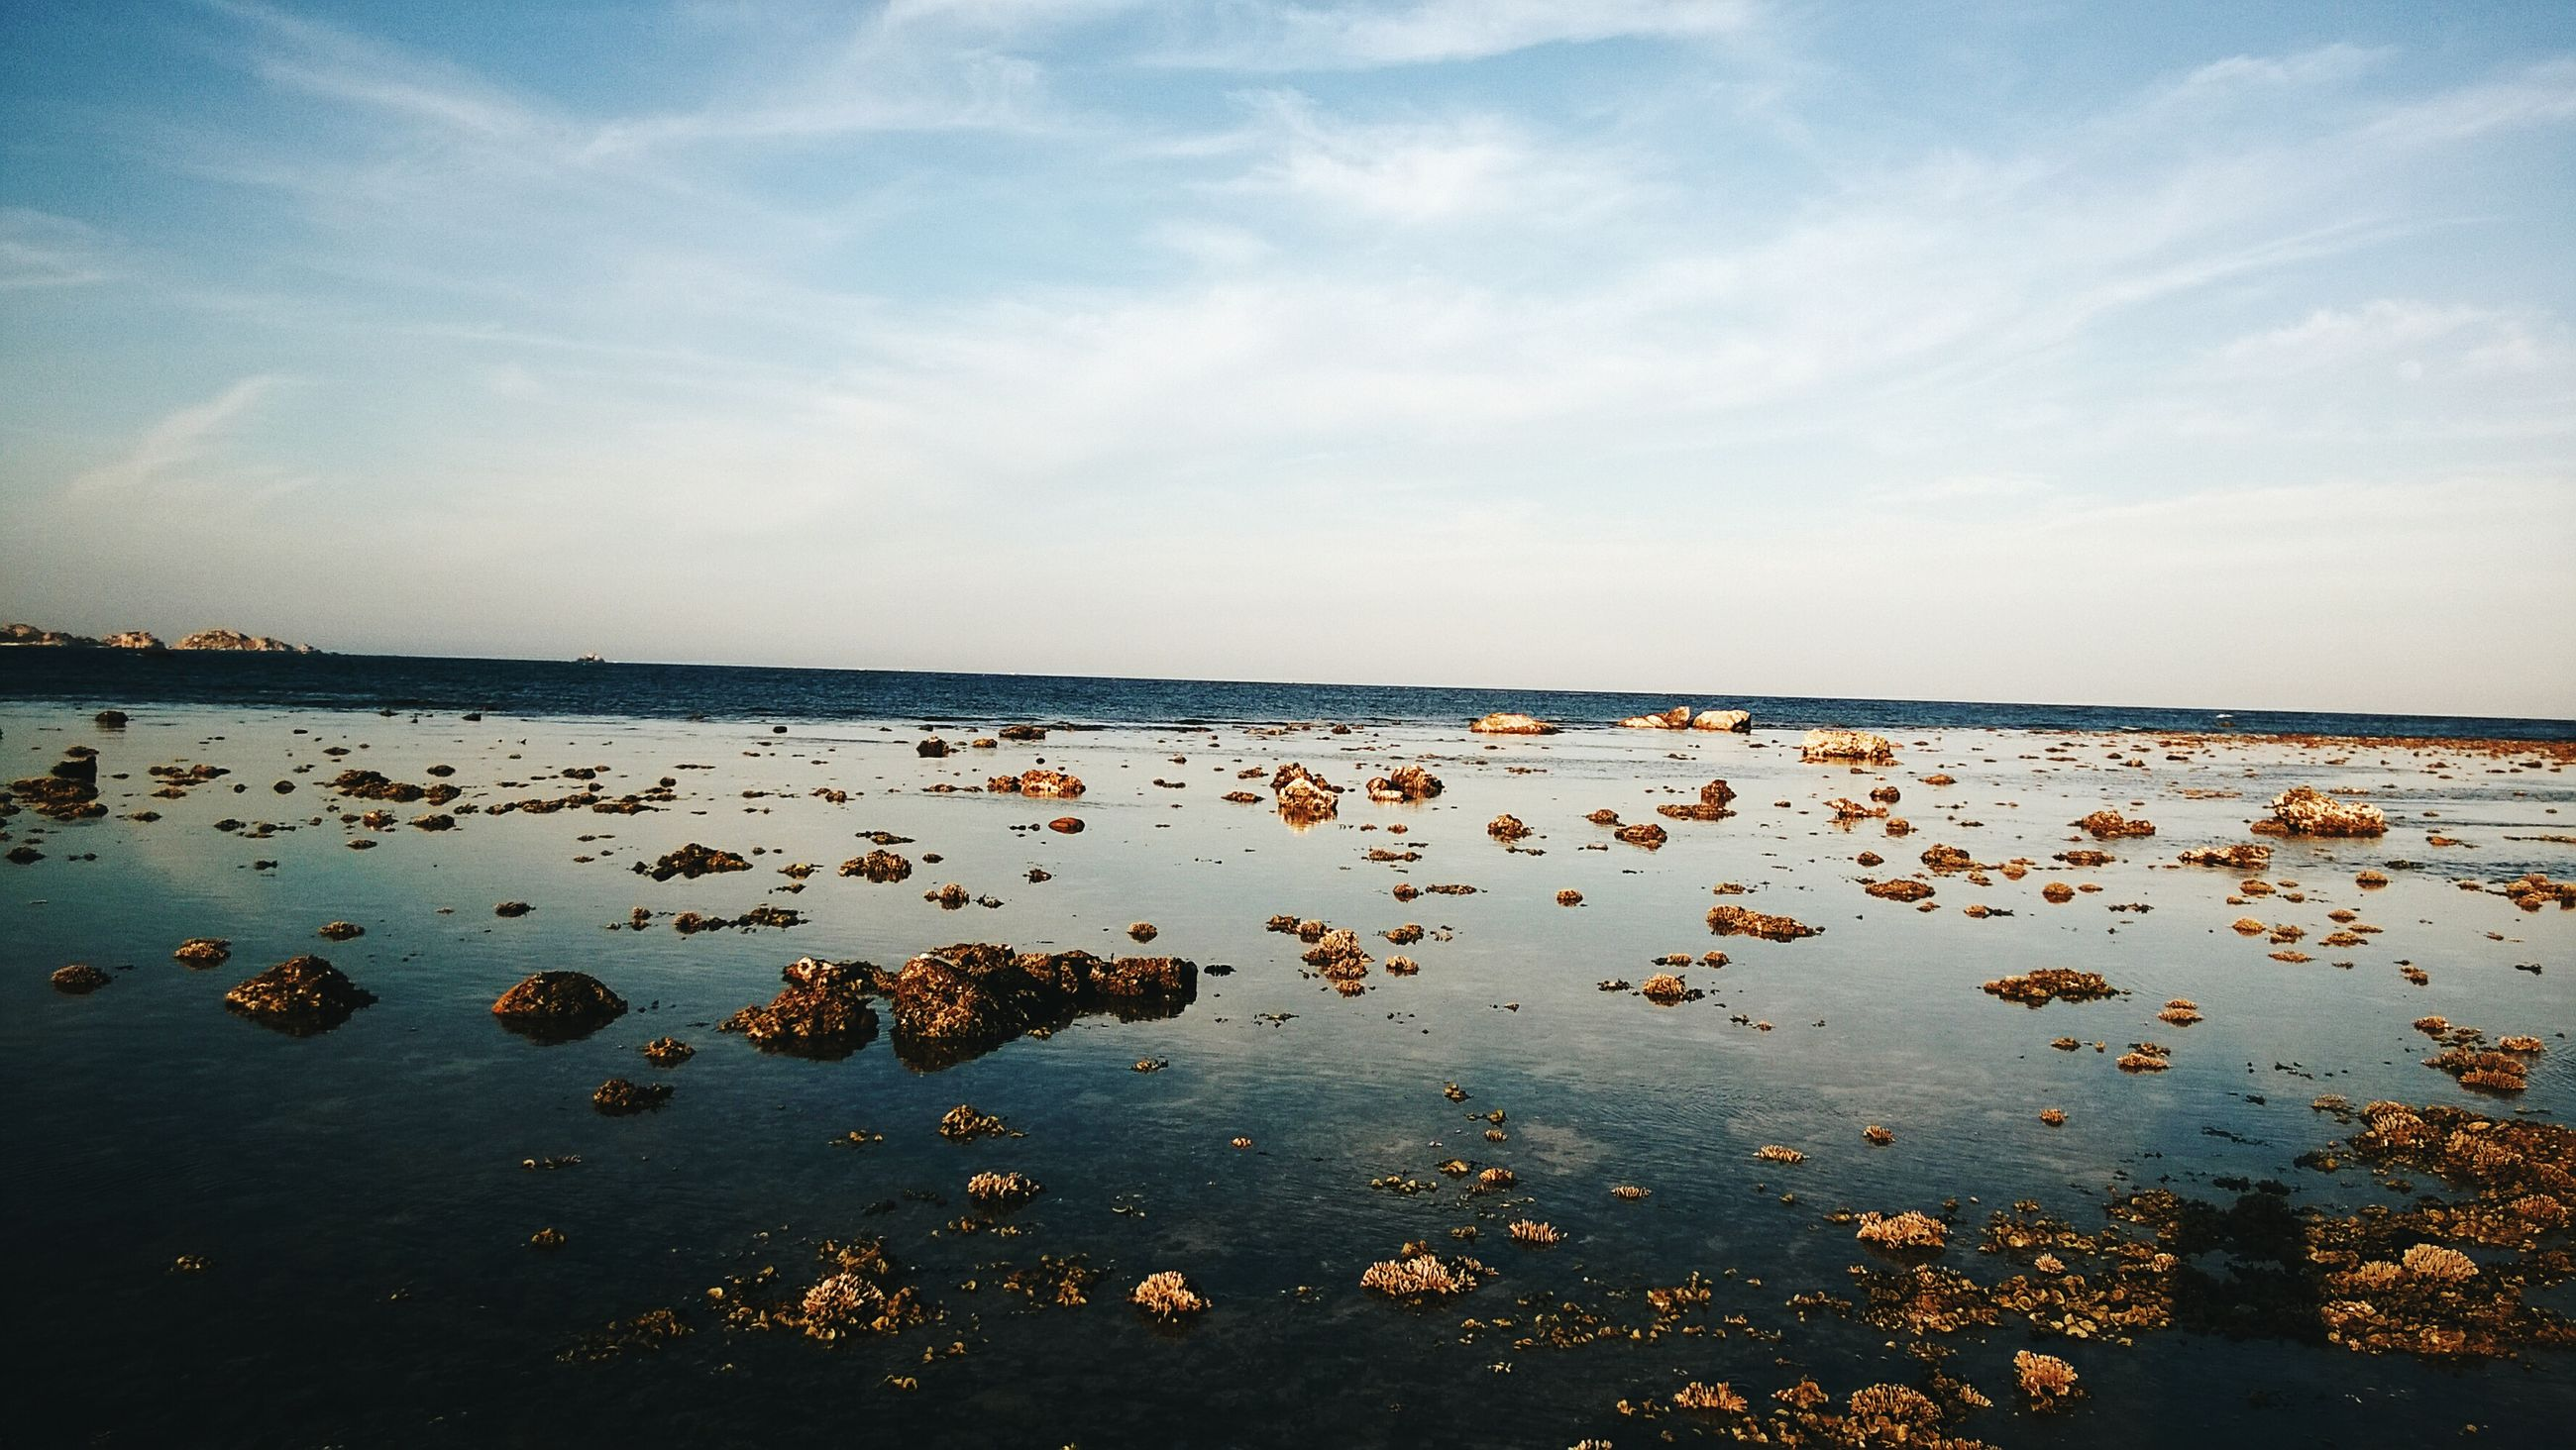 water, sky, sea, beach, cloud - sky, shore, tranquil scene, bird, tranquility, nature, scenics, beauty in nature, horizon over water, flock of birds, transportation, animal themes, nautical vessel, lake, outdoors